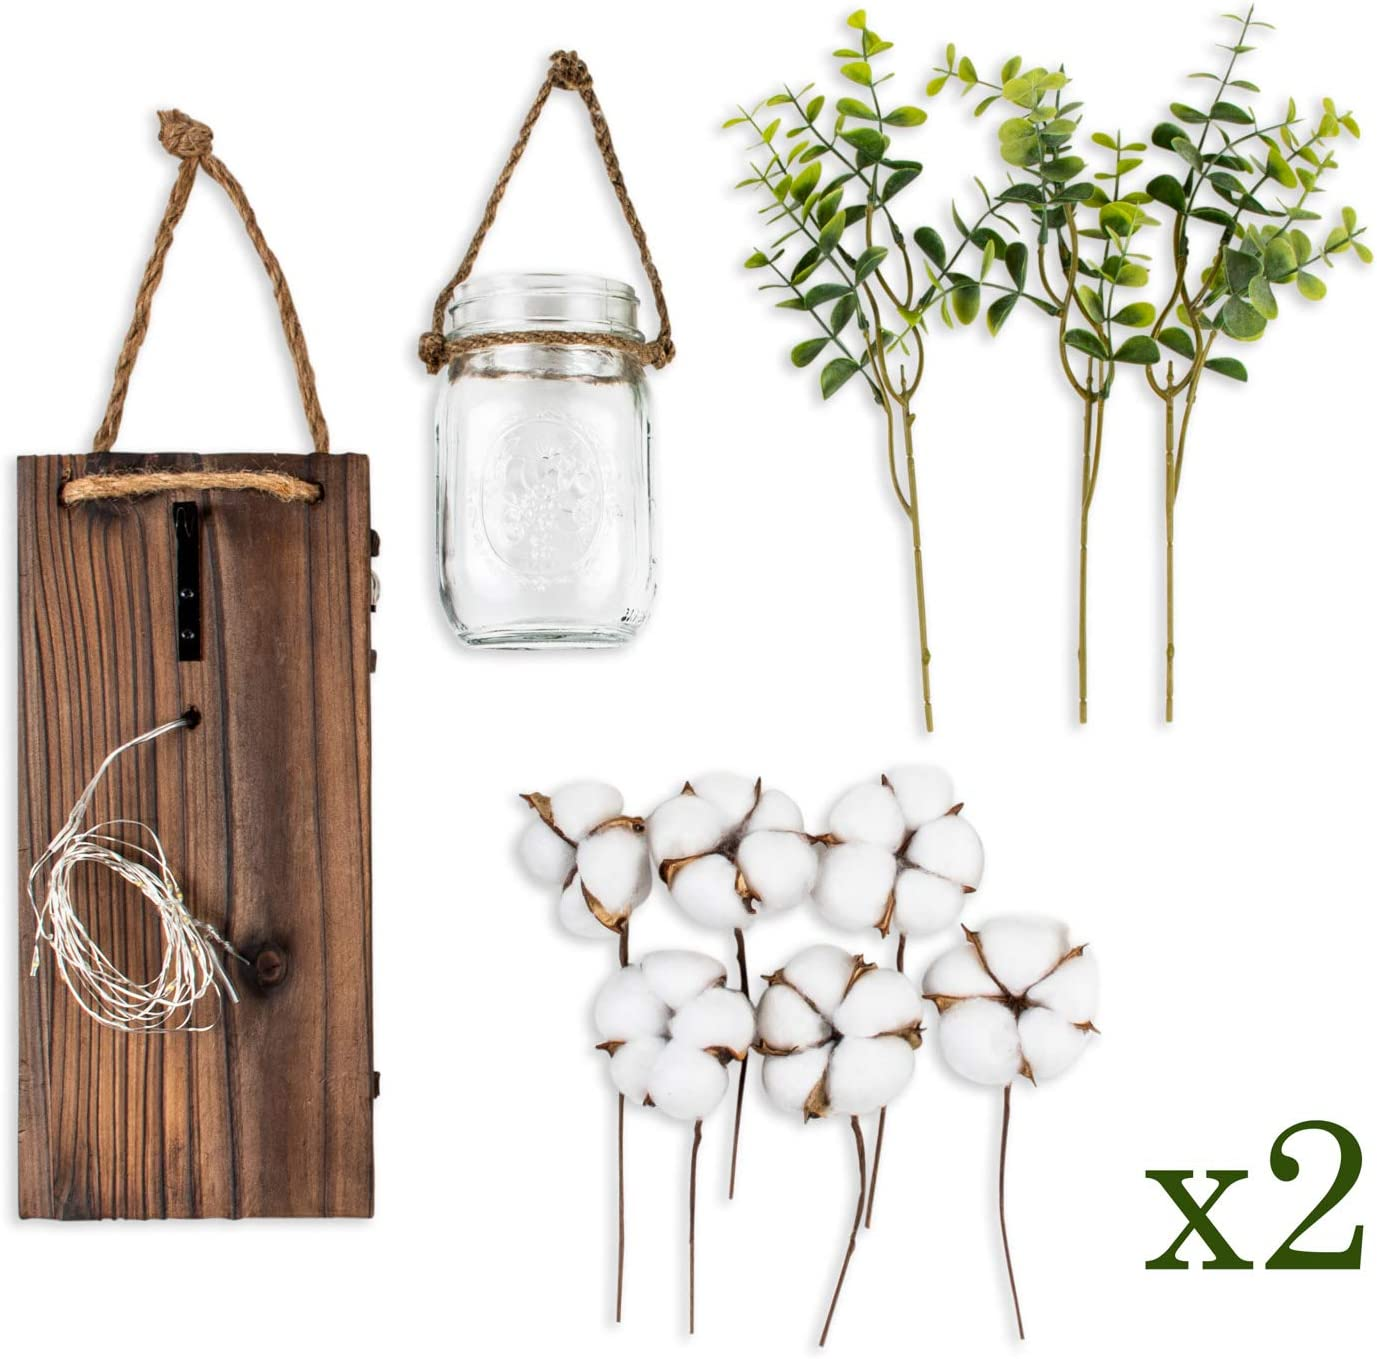 Set of 2 by Happy Moose Co- Vintage Farmhouse Home Decorations for Bathroom Kitchen Bedroom Living Room and Eucalyptus Wall Decor- Rustic Hanging Mason Jar Sconces with LED Lights Cotton Flowers